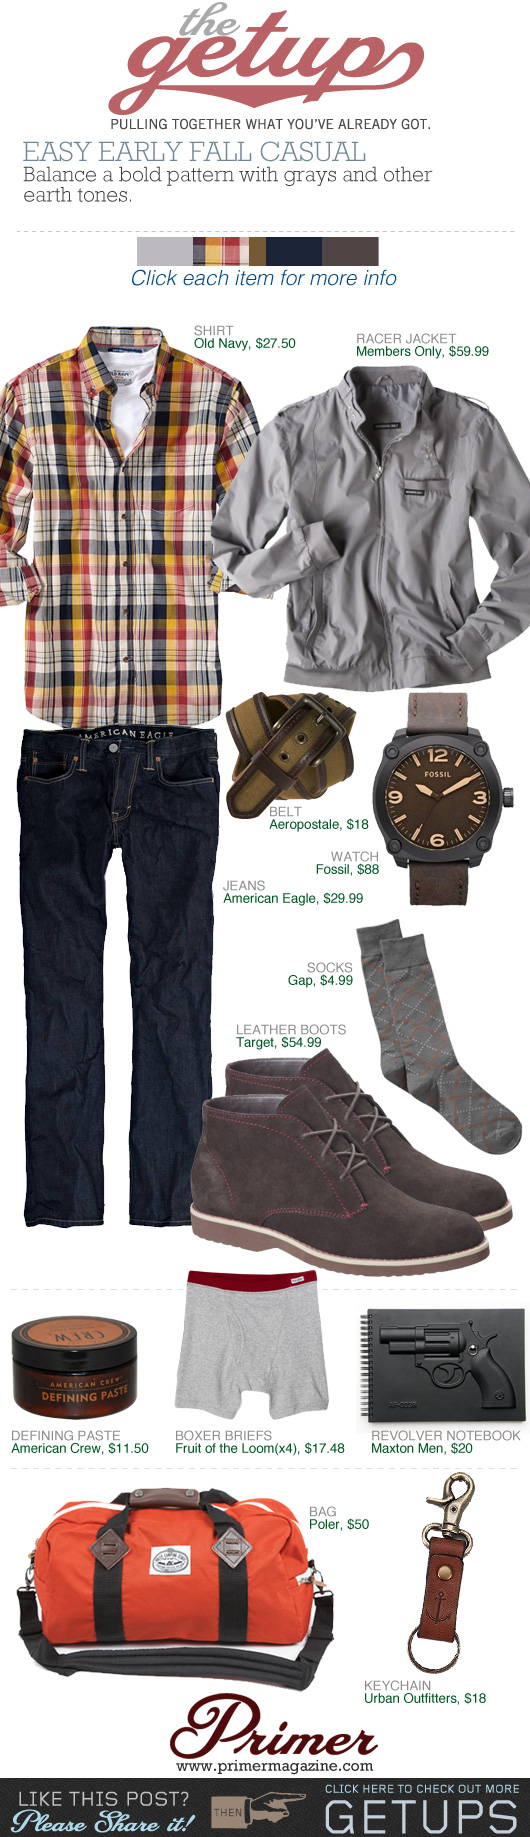 The Getup Fall Casual gray jacket, plaid shirt, dark jeans, brown boots